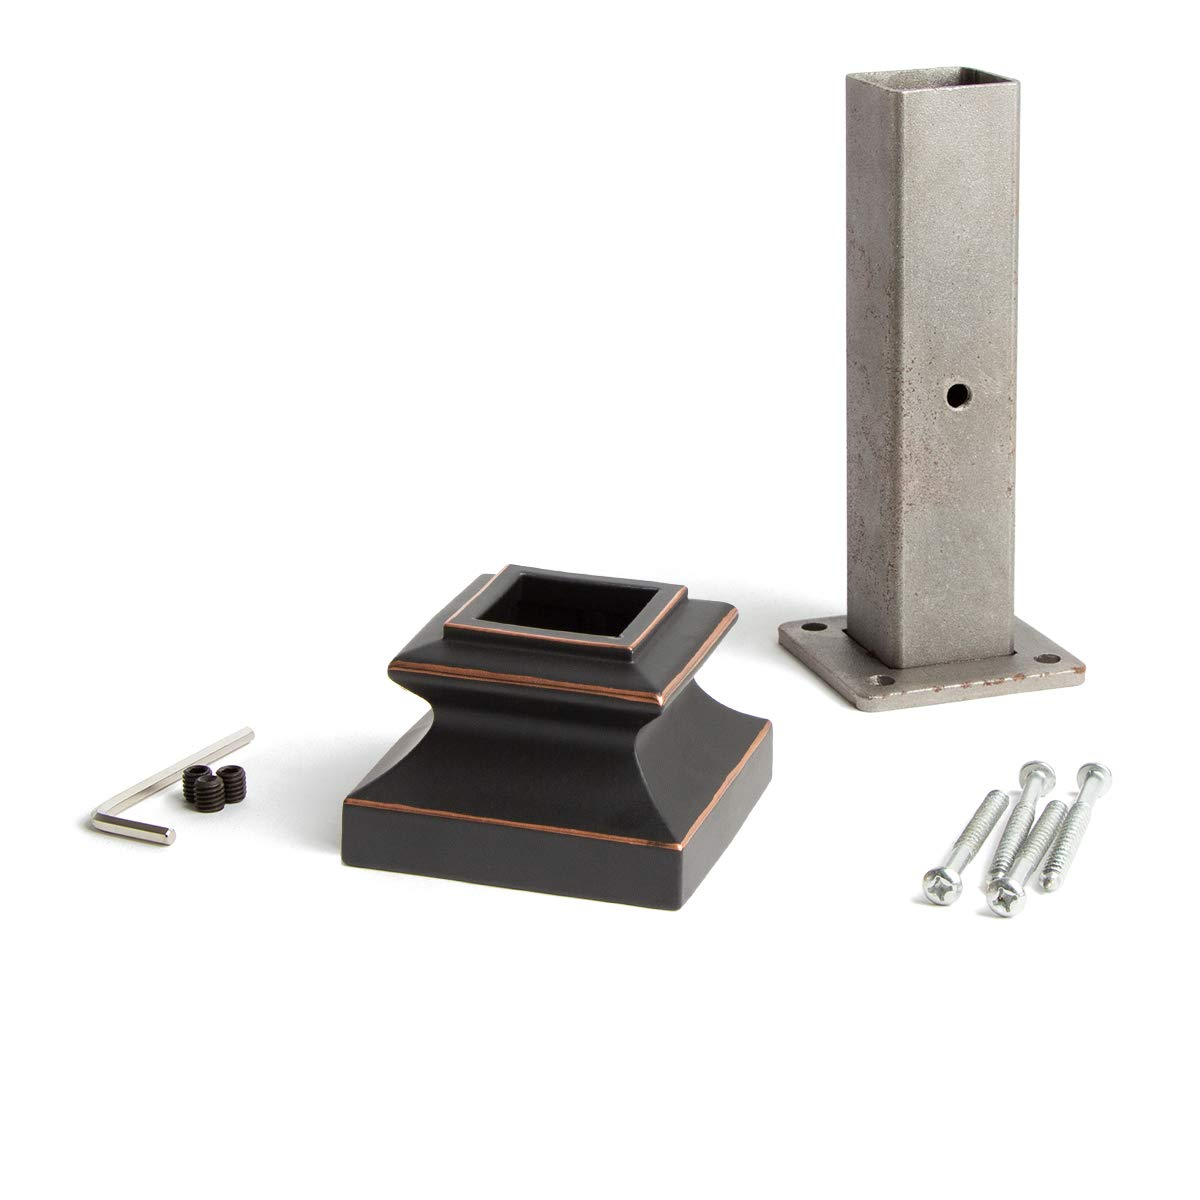 Oil Rubbed Copper 16.2.3 Newel Mounting Kit for 1-3/16 inch Square Iron Newel Posts for Stair Remodeling by House of Forgings